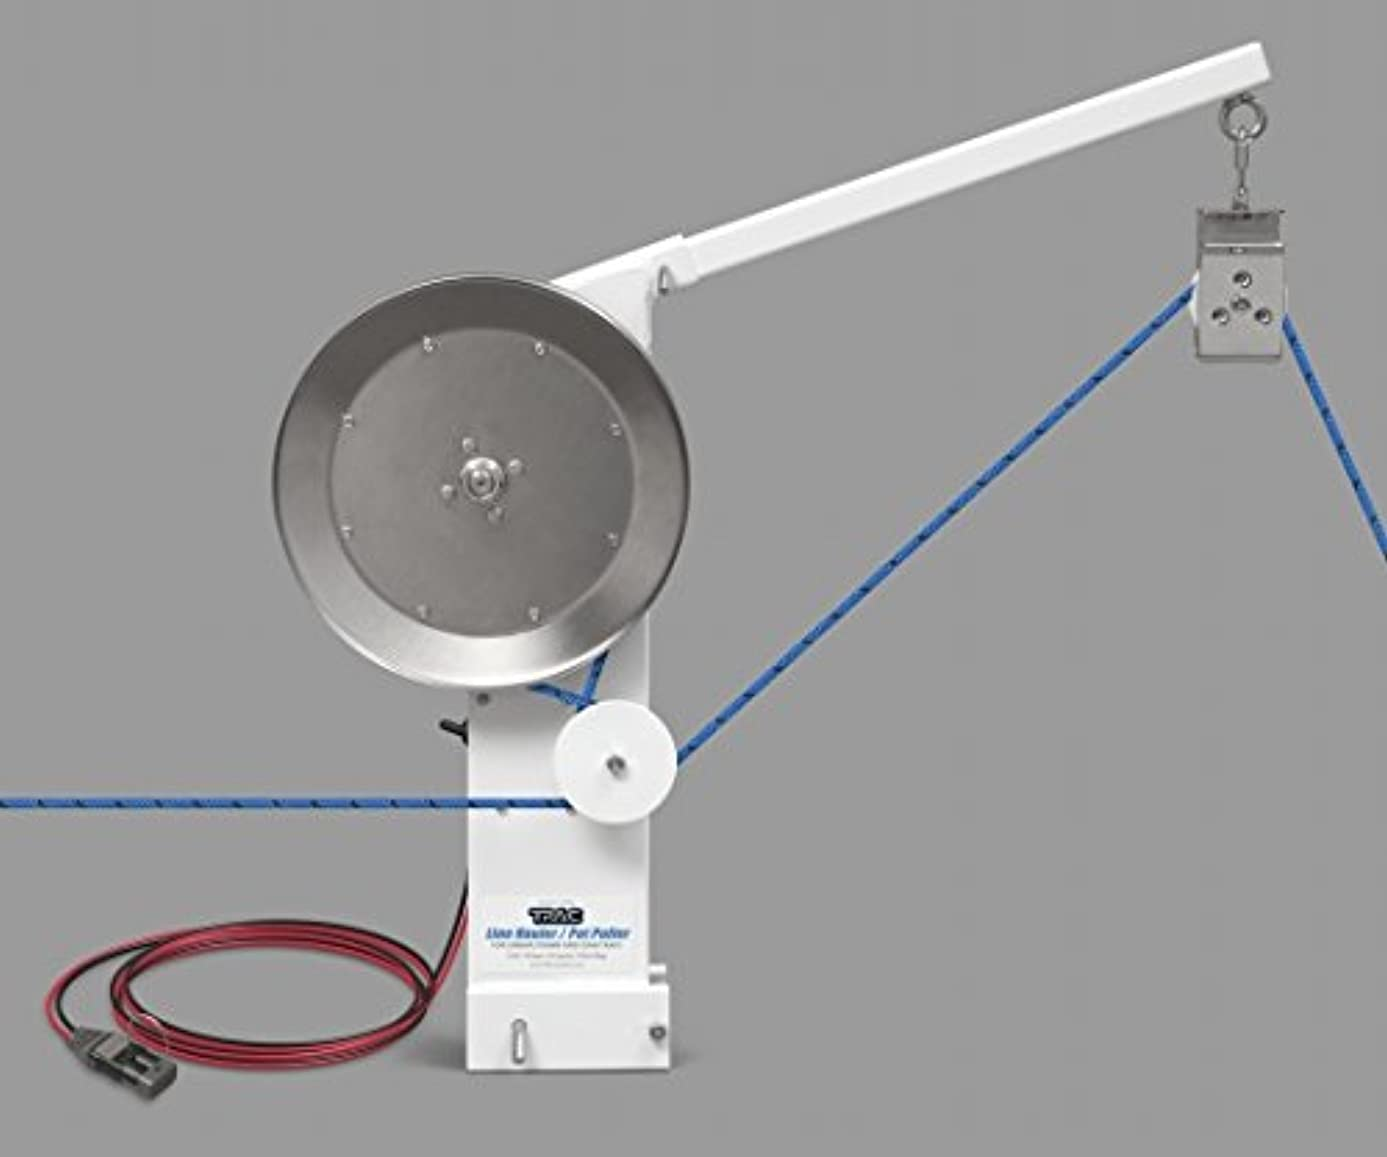 Trac Outdoor T10250 Pot Puller and Line Hauler